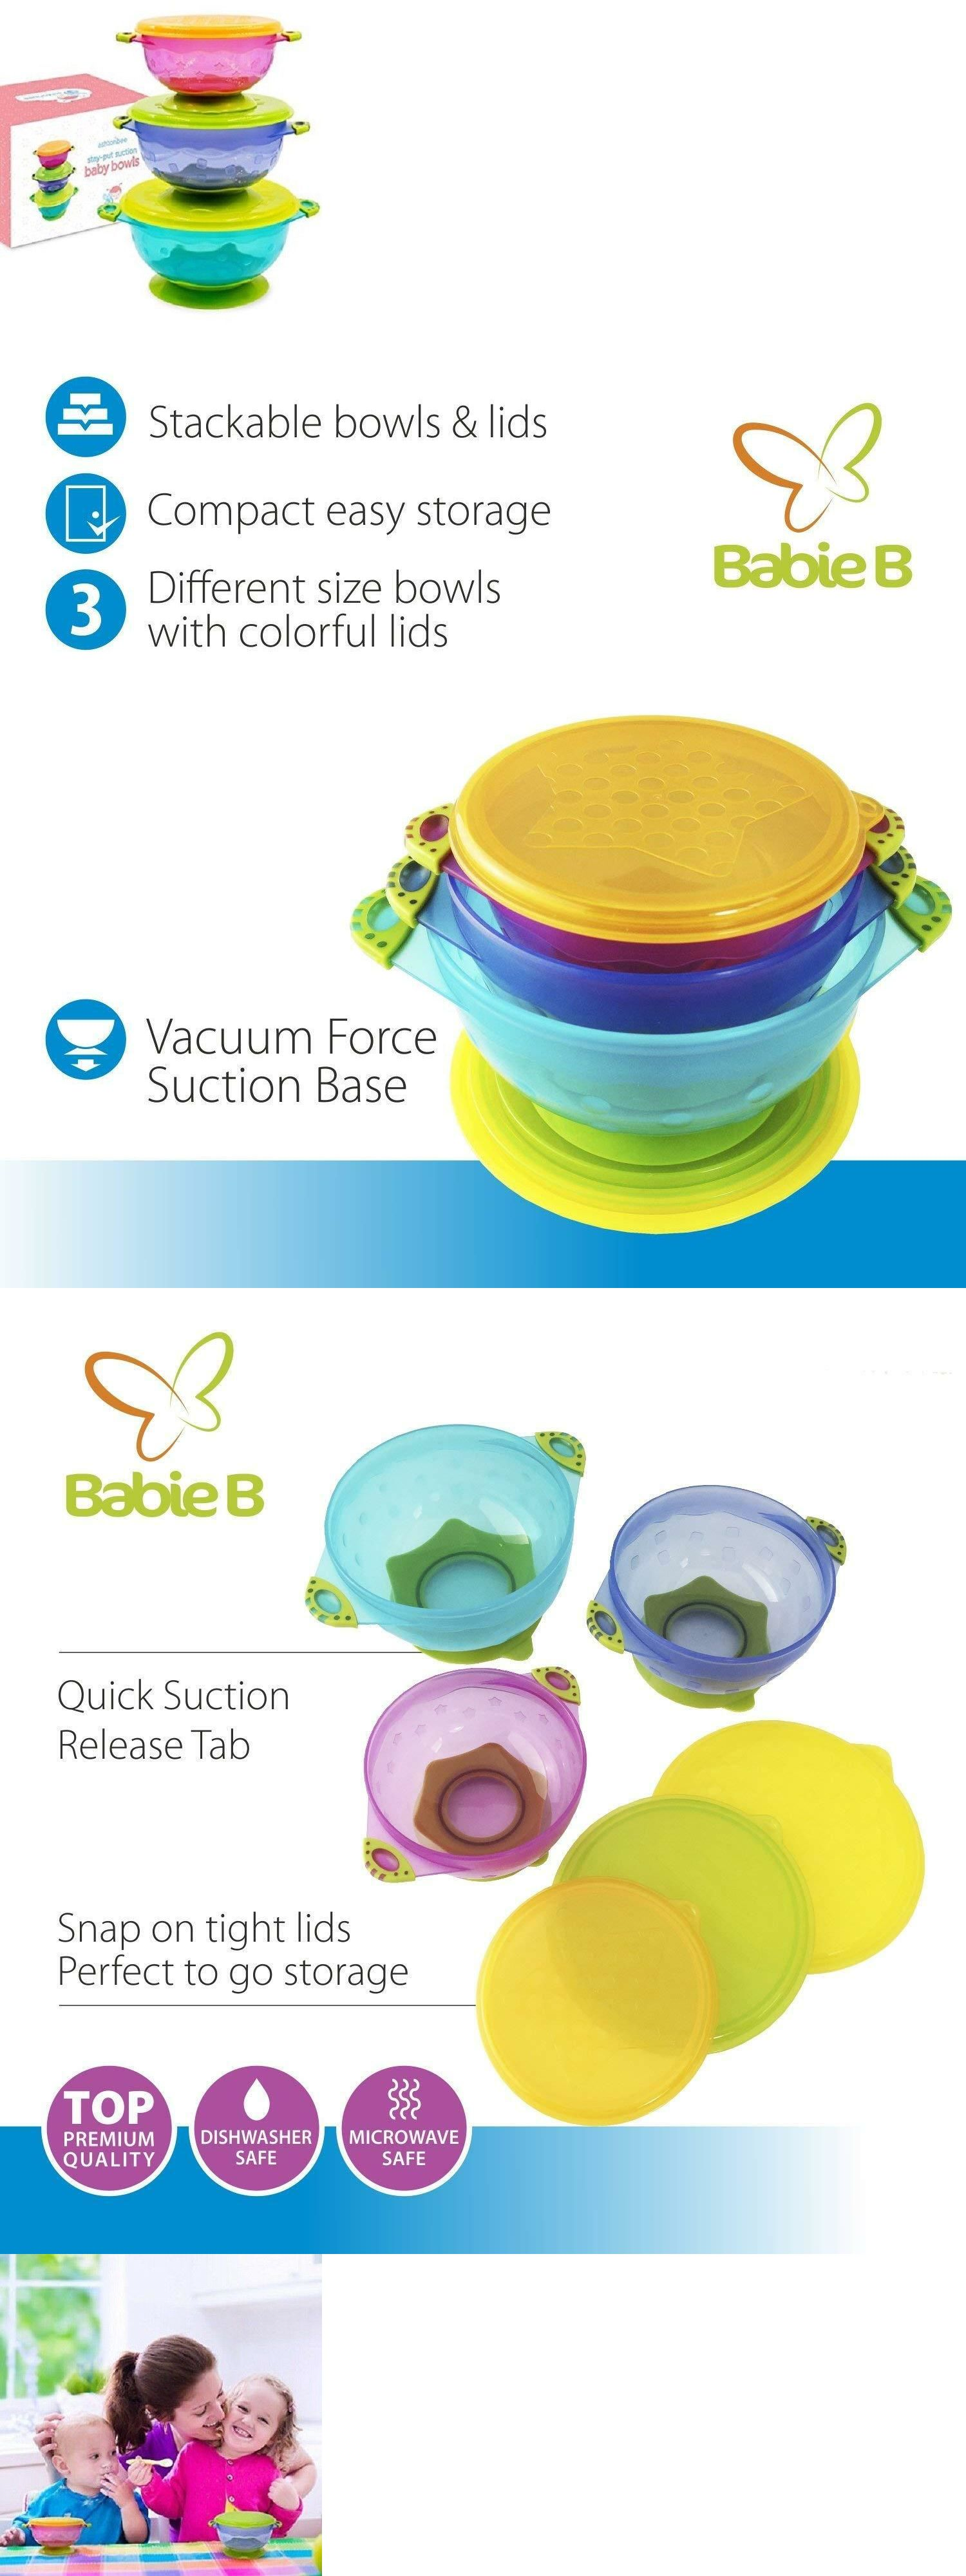 Stay-put Suction Bowl Feeding Set With Spill-proof Lid For Babies And Toddlers Cups, Dishes & Utensils